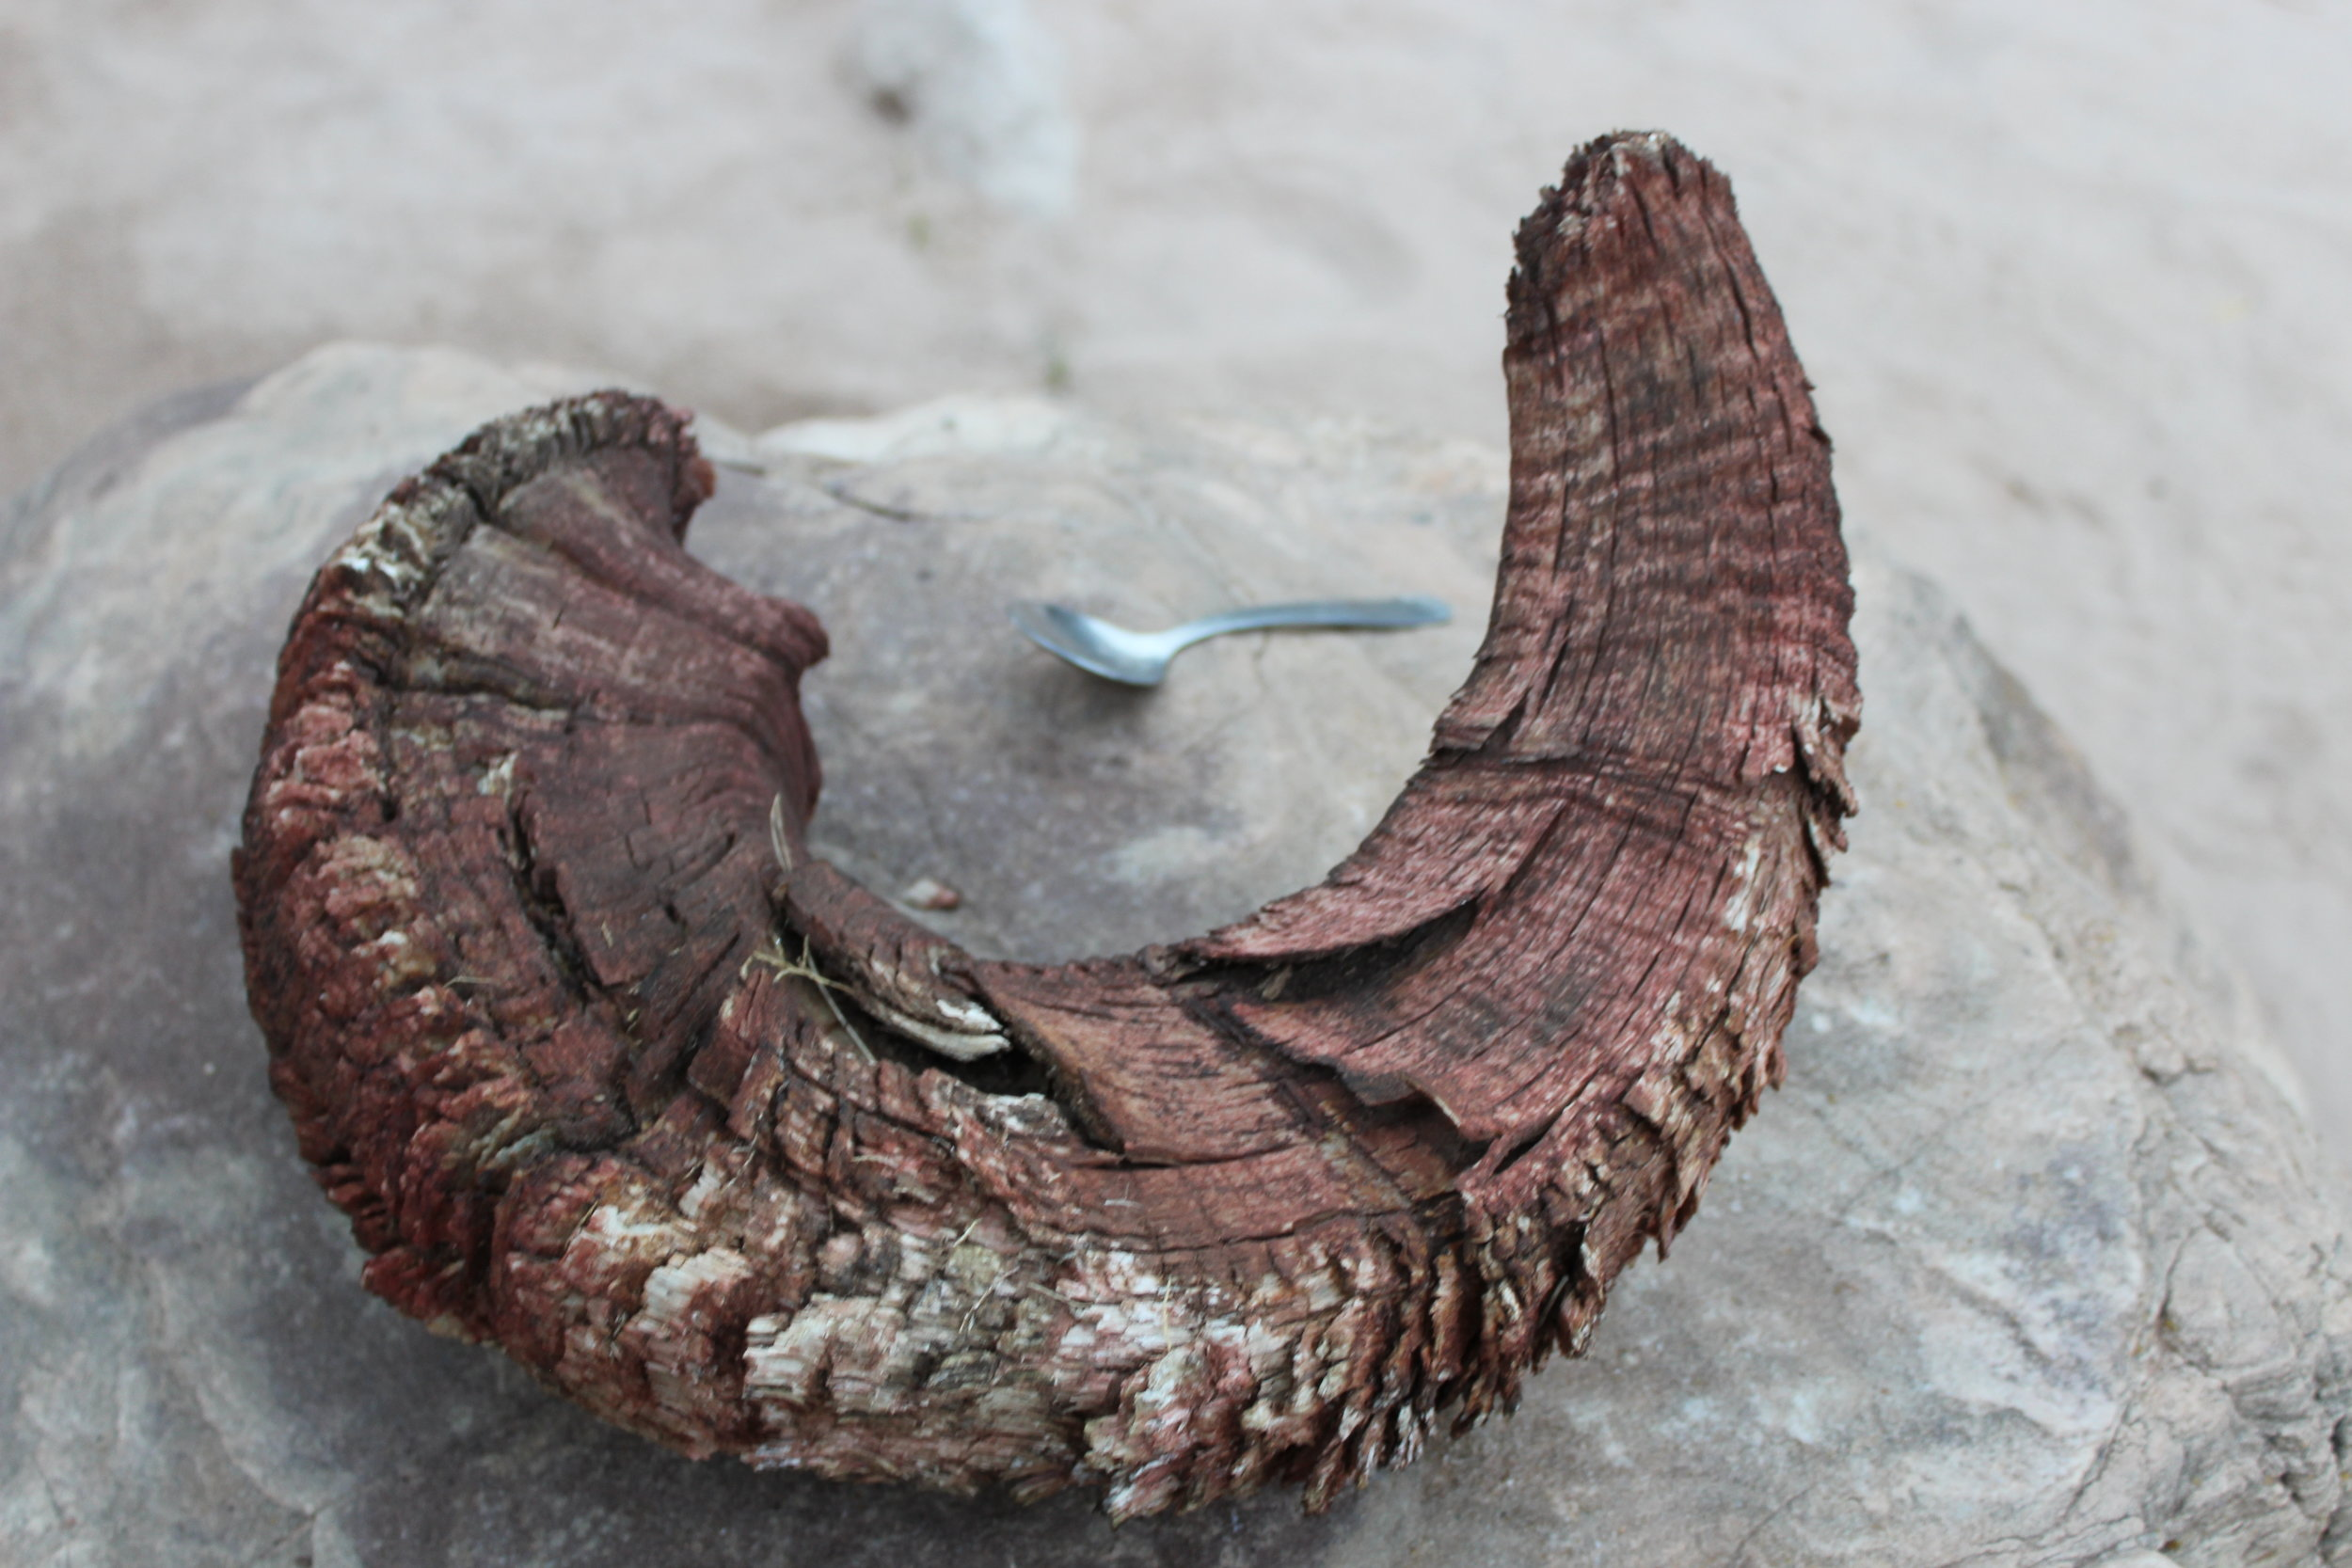 This magnificent ram horn was left at the beach.